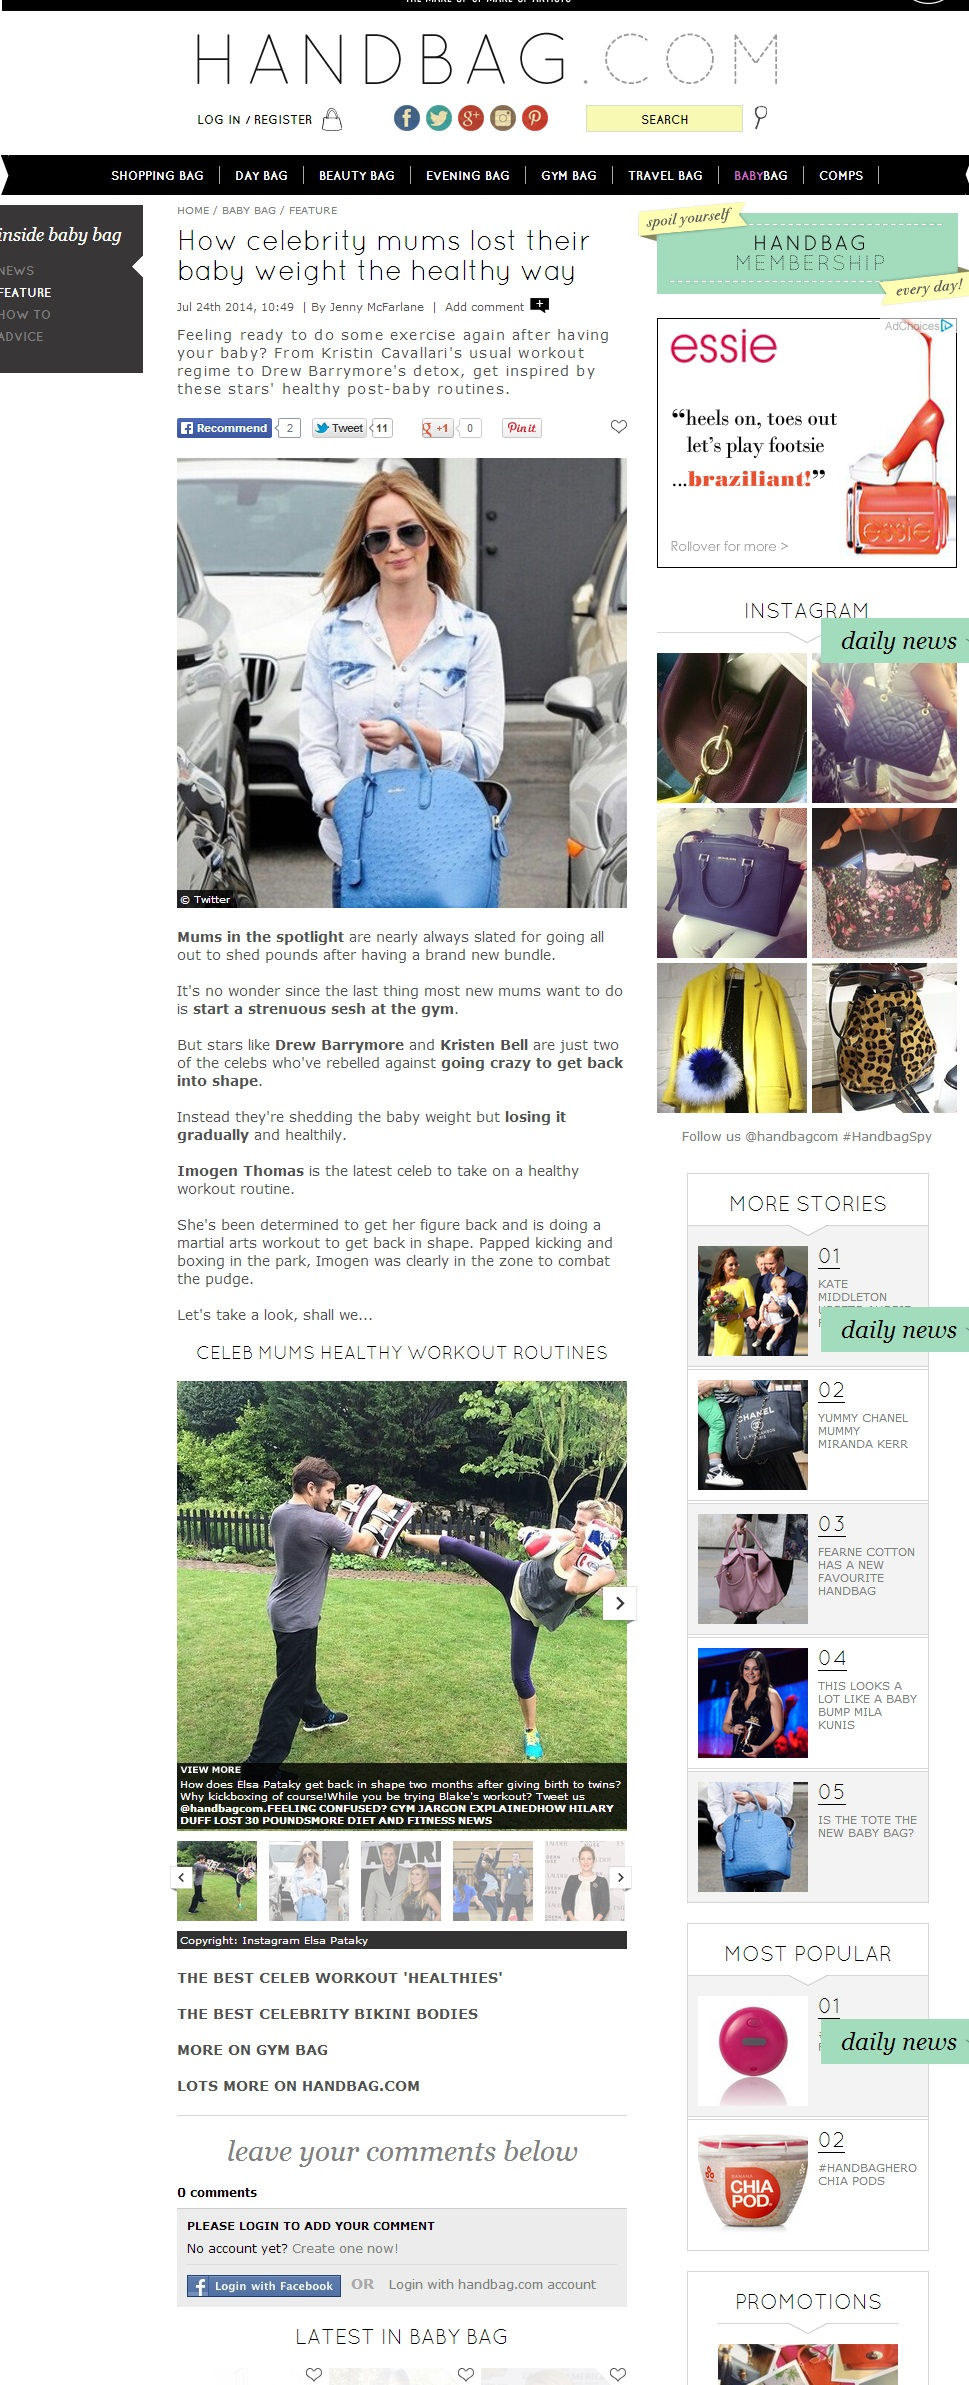 screencapture-www-handbag-com-baby-bag-feature-a565031-how-celebrity-mums-lost-their-baby-weight-the-healthy-way-html